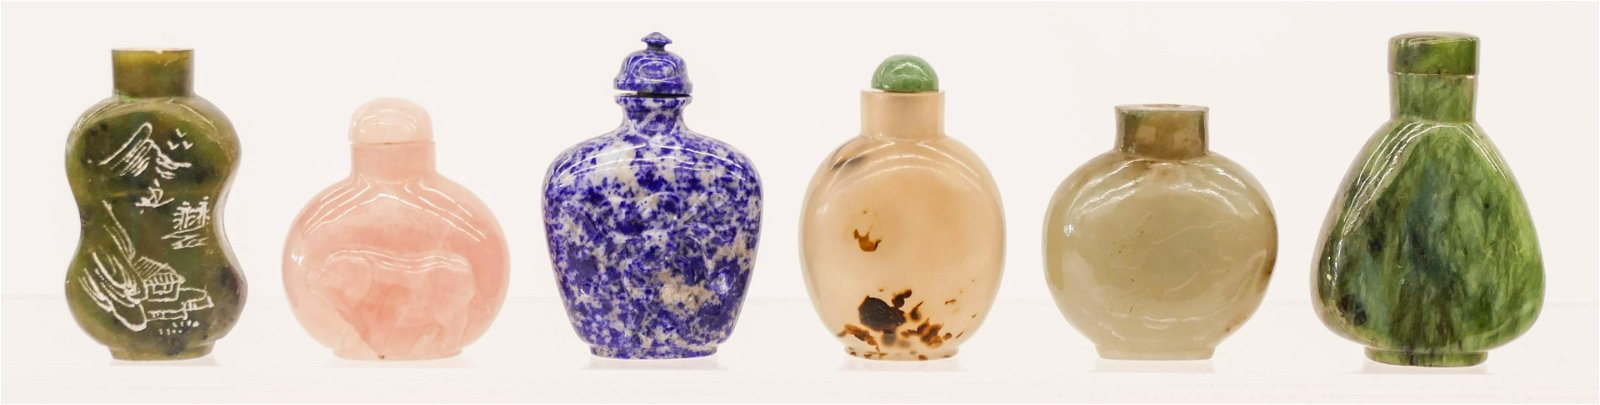 6pc Chinese Jade and Agate Snuff Bottles 2'' to 2.5''.